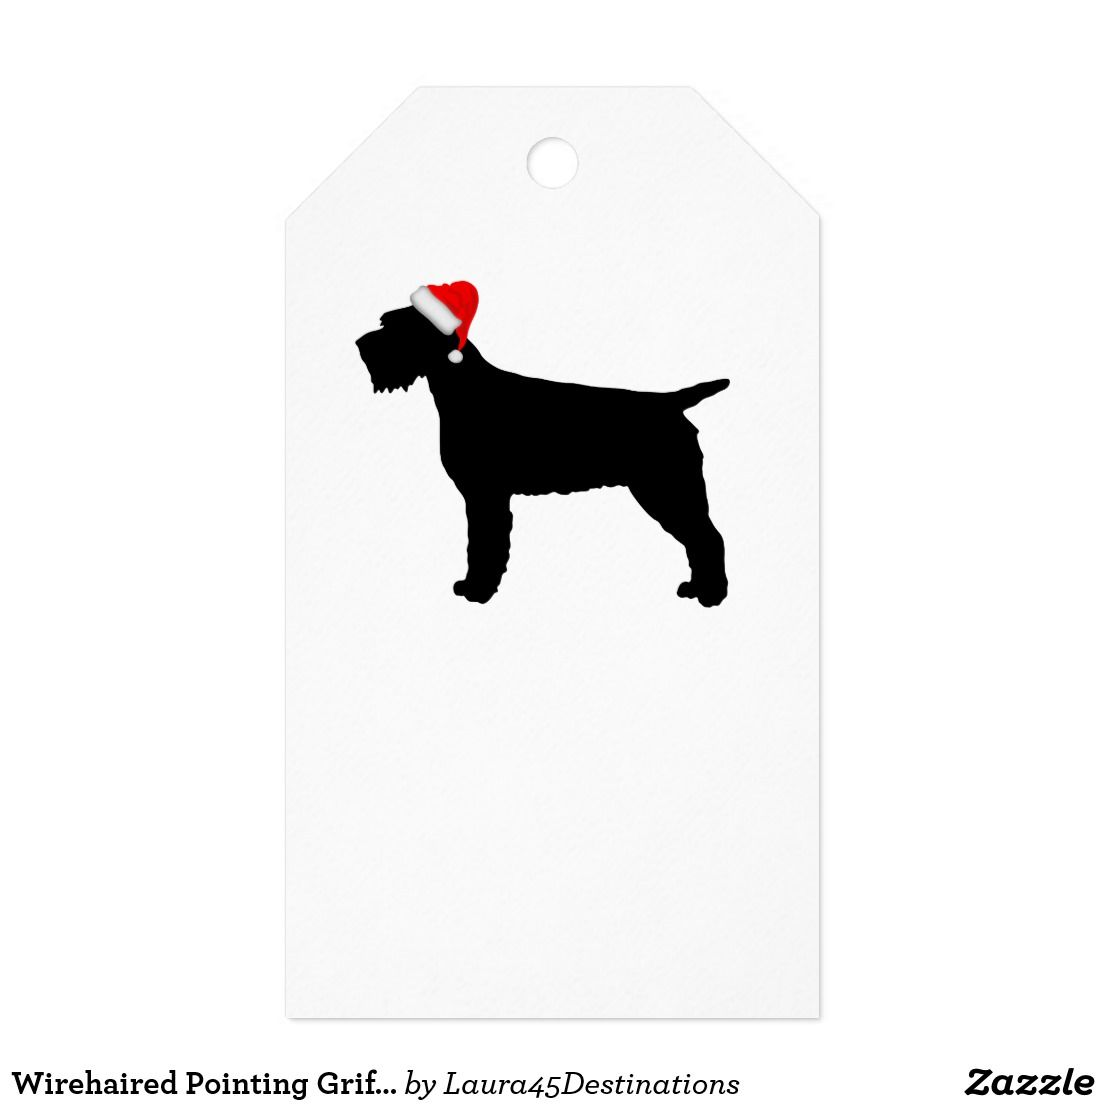 Wirehaired Pointing Griffon Dog With Red Santa Hat Gift Tags ...